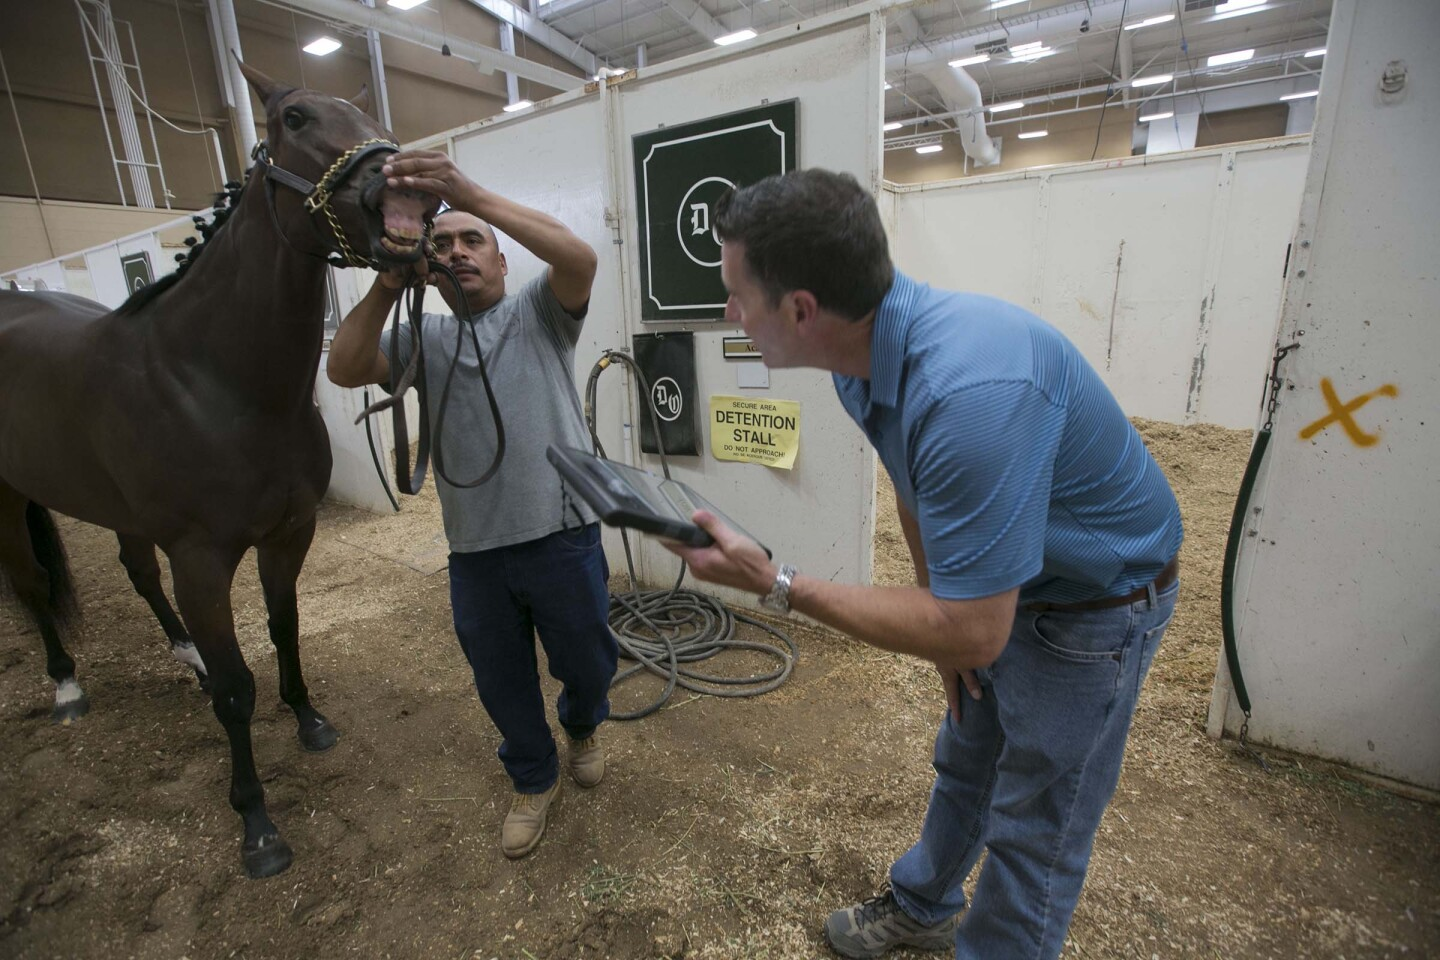 Dr. Dana Stead, one of the Del Mar thoroughbred club's veterinarians, says his job is to be an advocate for the horses at the racetrack. On Wednesday July 31st, Dr. Stead checked half of the days field while Dr. William Farmer checked the other half. Here Dr. Stead is verifying the lip tattoo of one of the day's entries.